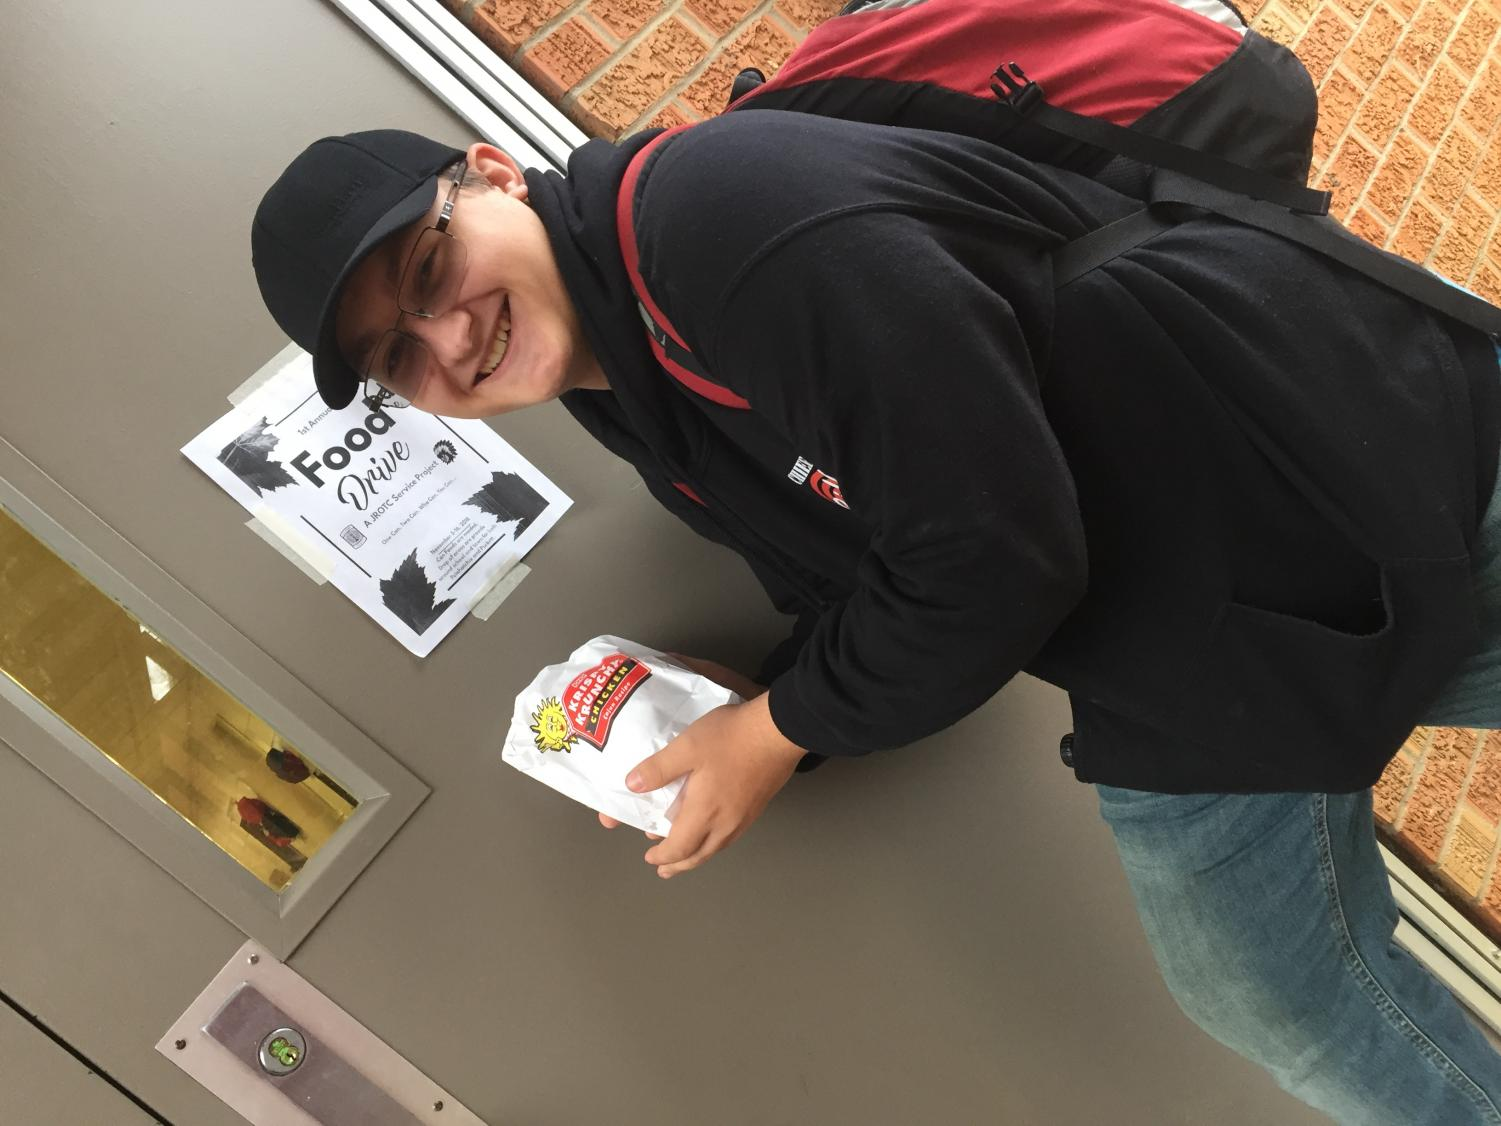 Landin Pierce holds his food in front of the Food Drive poster.